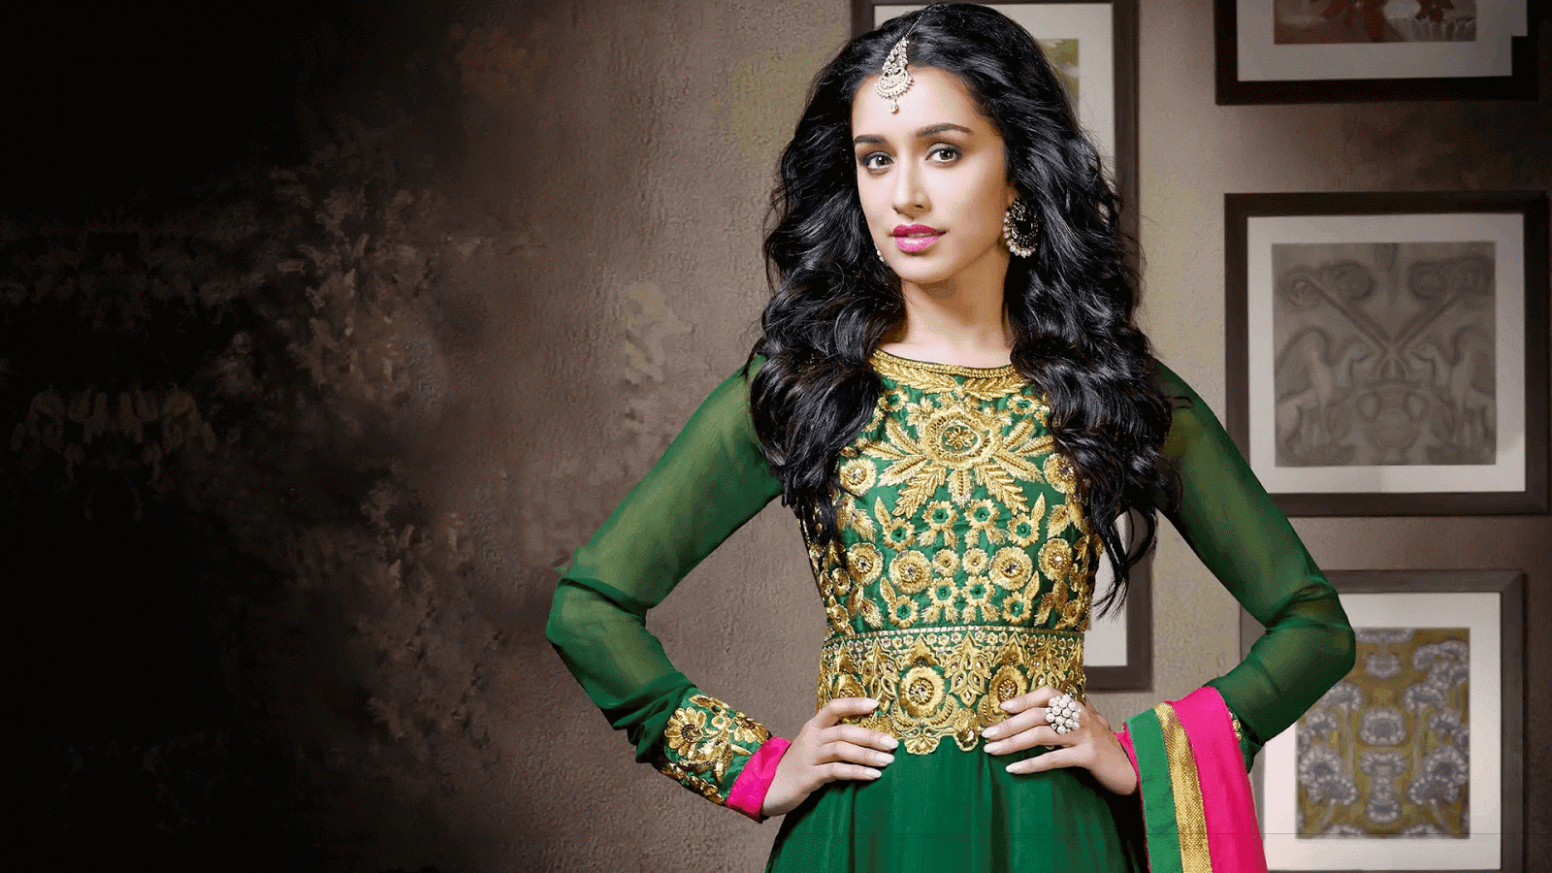 Shraddha Kapoor Wallpapers HD Download Free 1080p ...